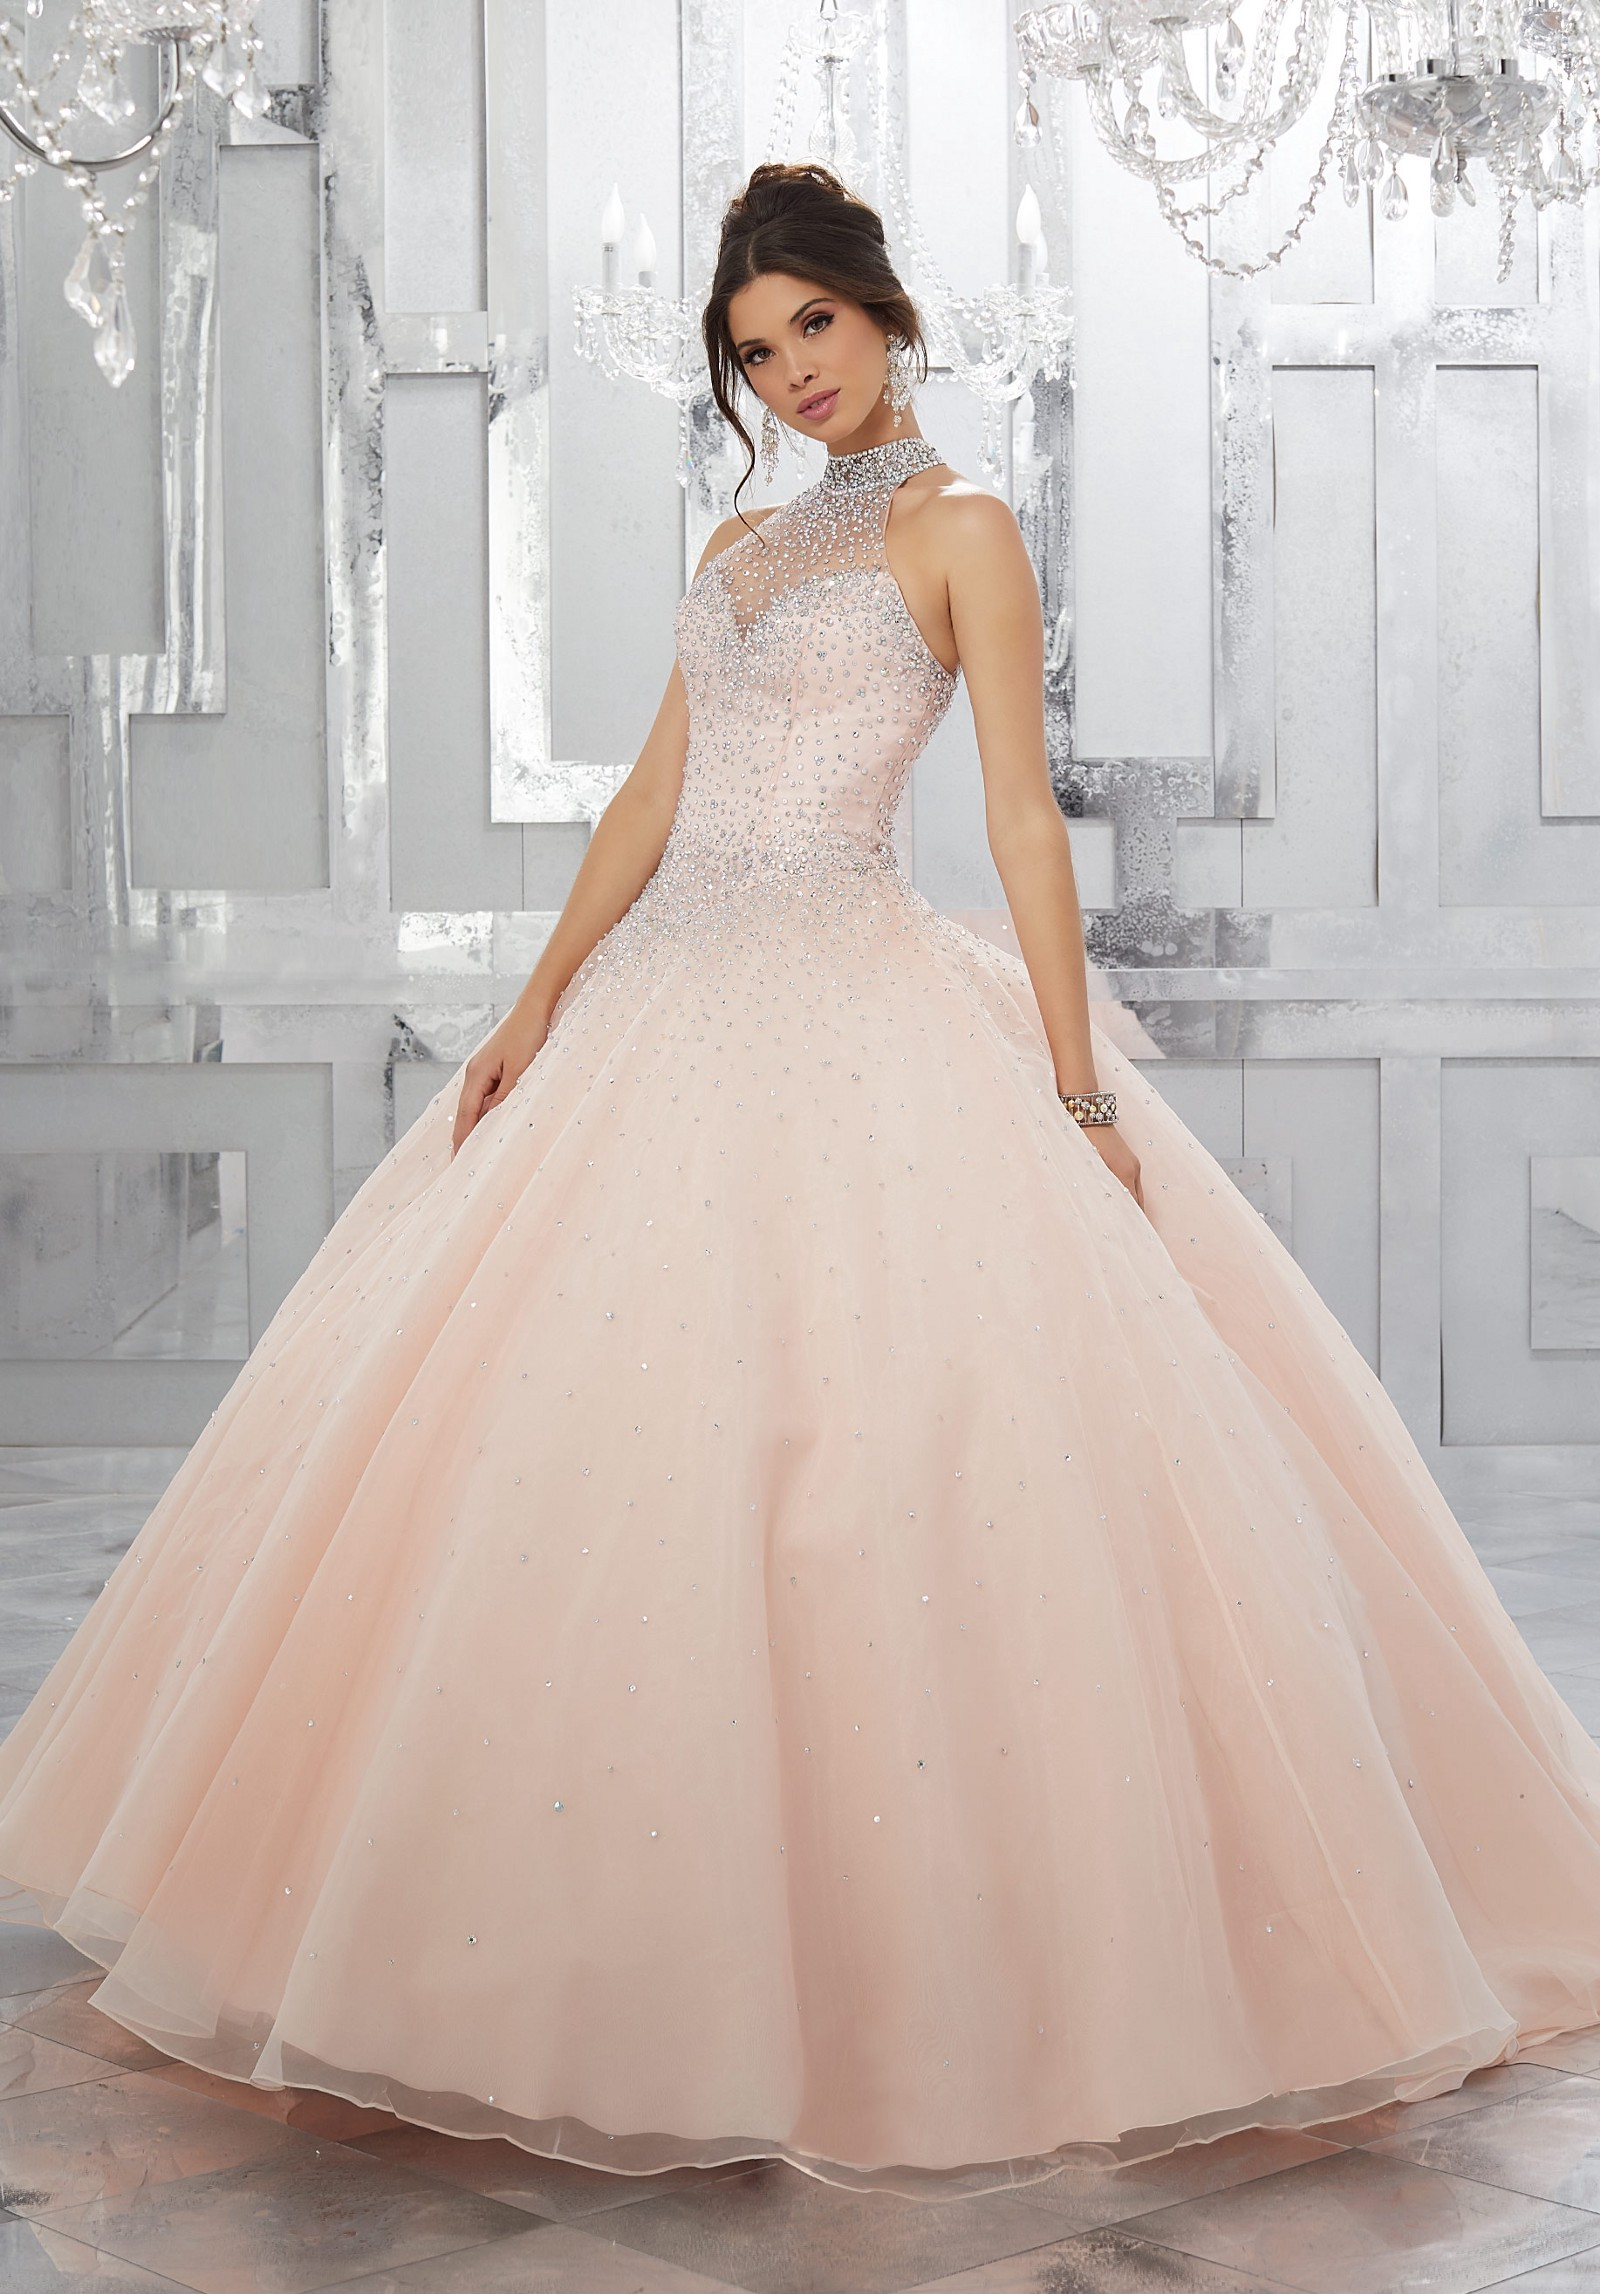 HOTTEST EVENING GOWN STYLES YOU CAN TRY OUT THIS PARTY SEASON!